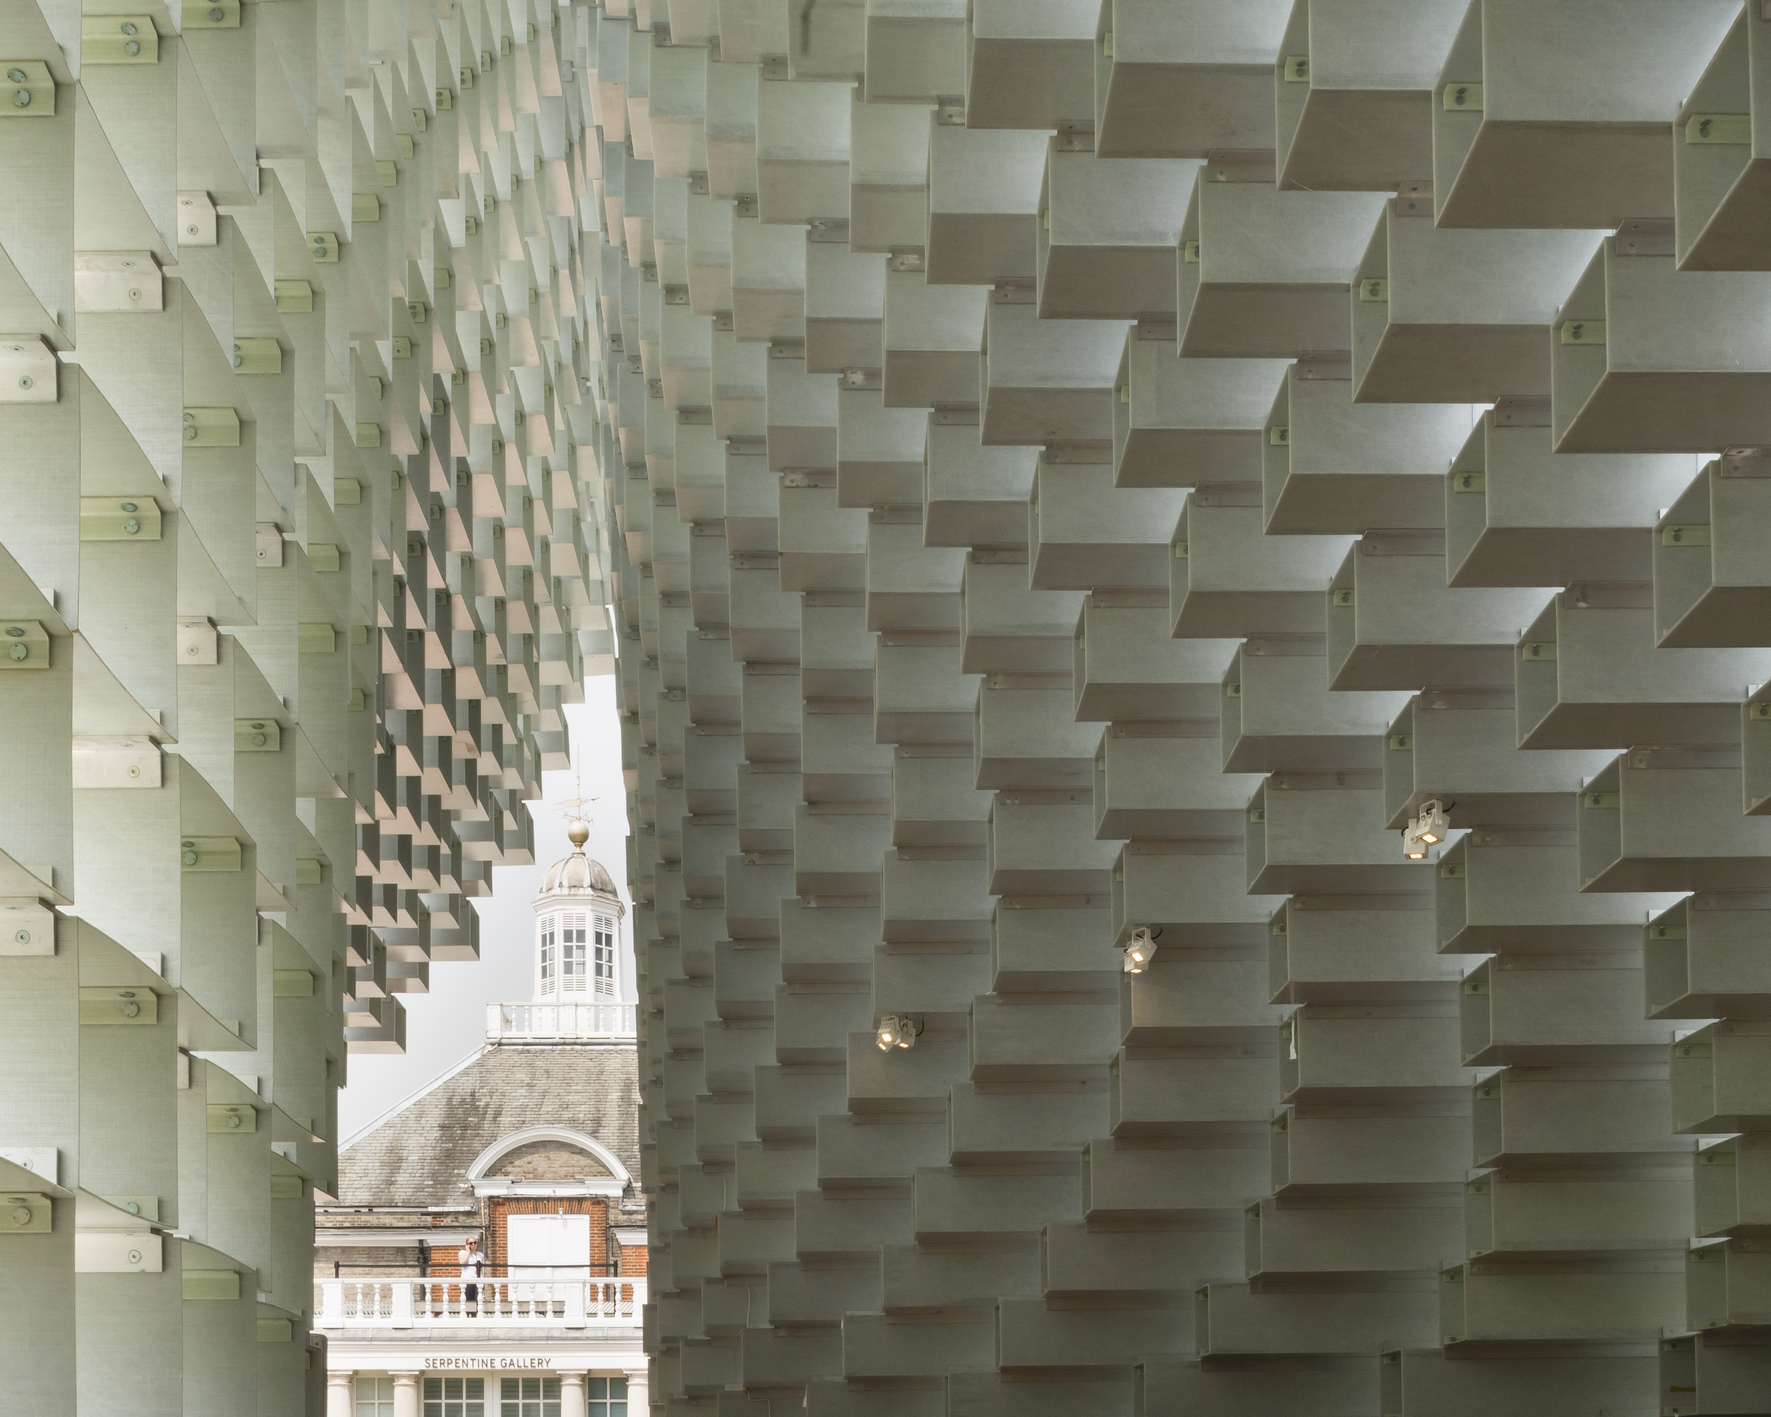 Bjarke ingels group s unzipped pavilion in vancouver nuvo for Big bjarke ingels group